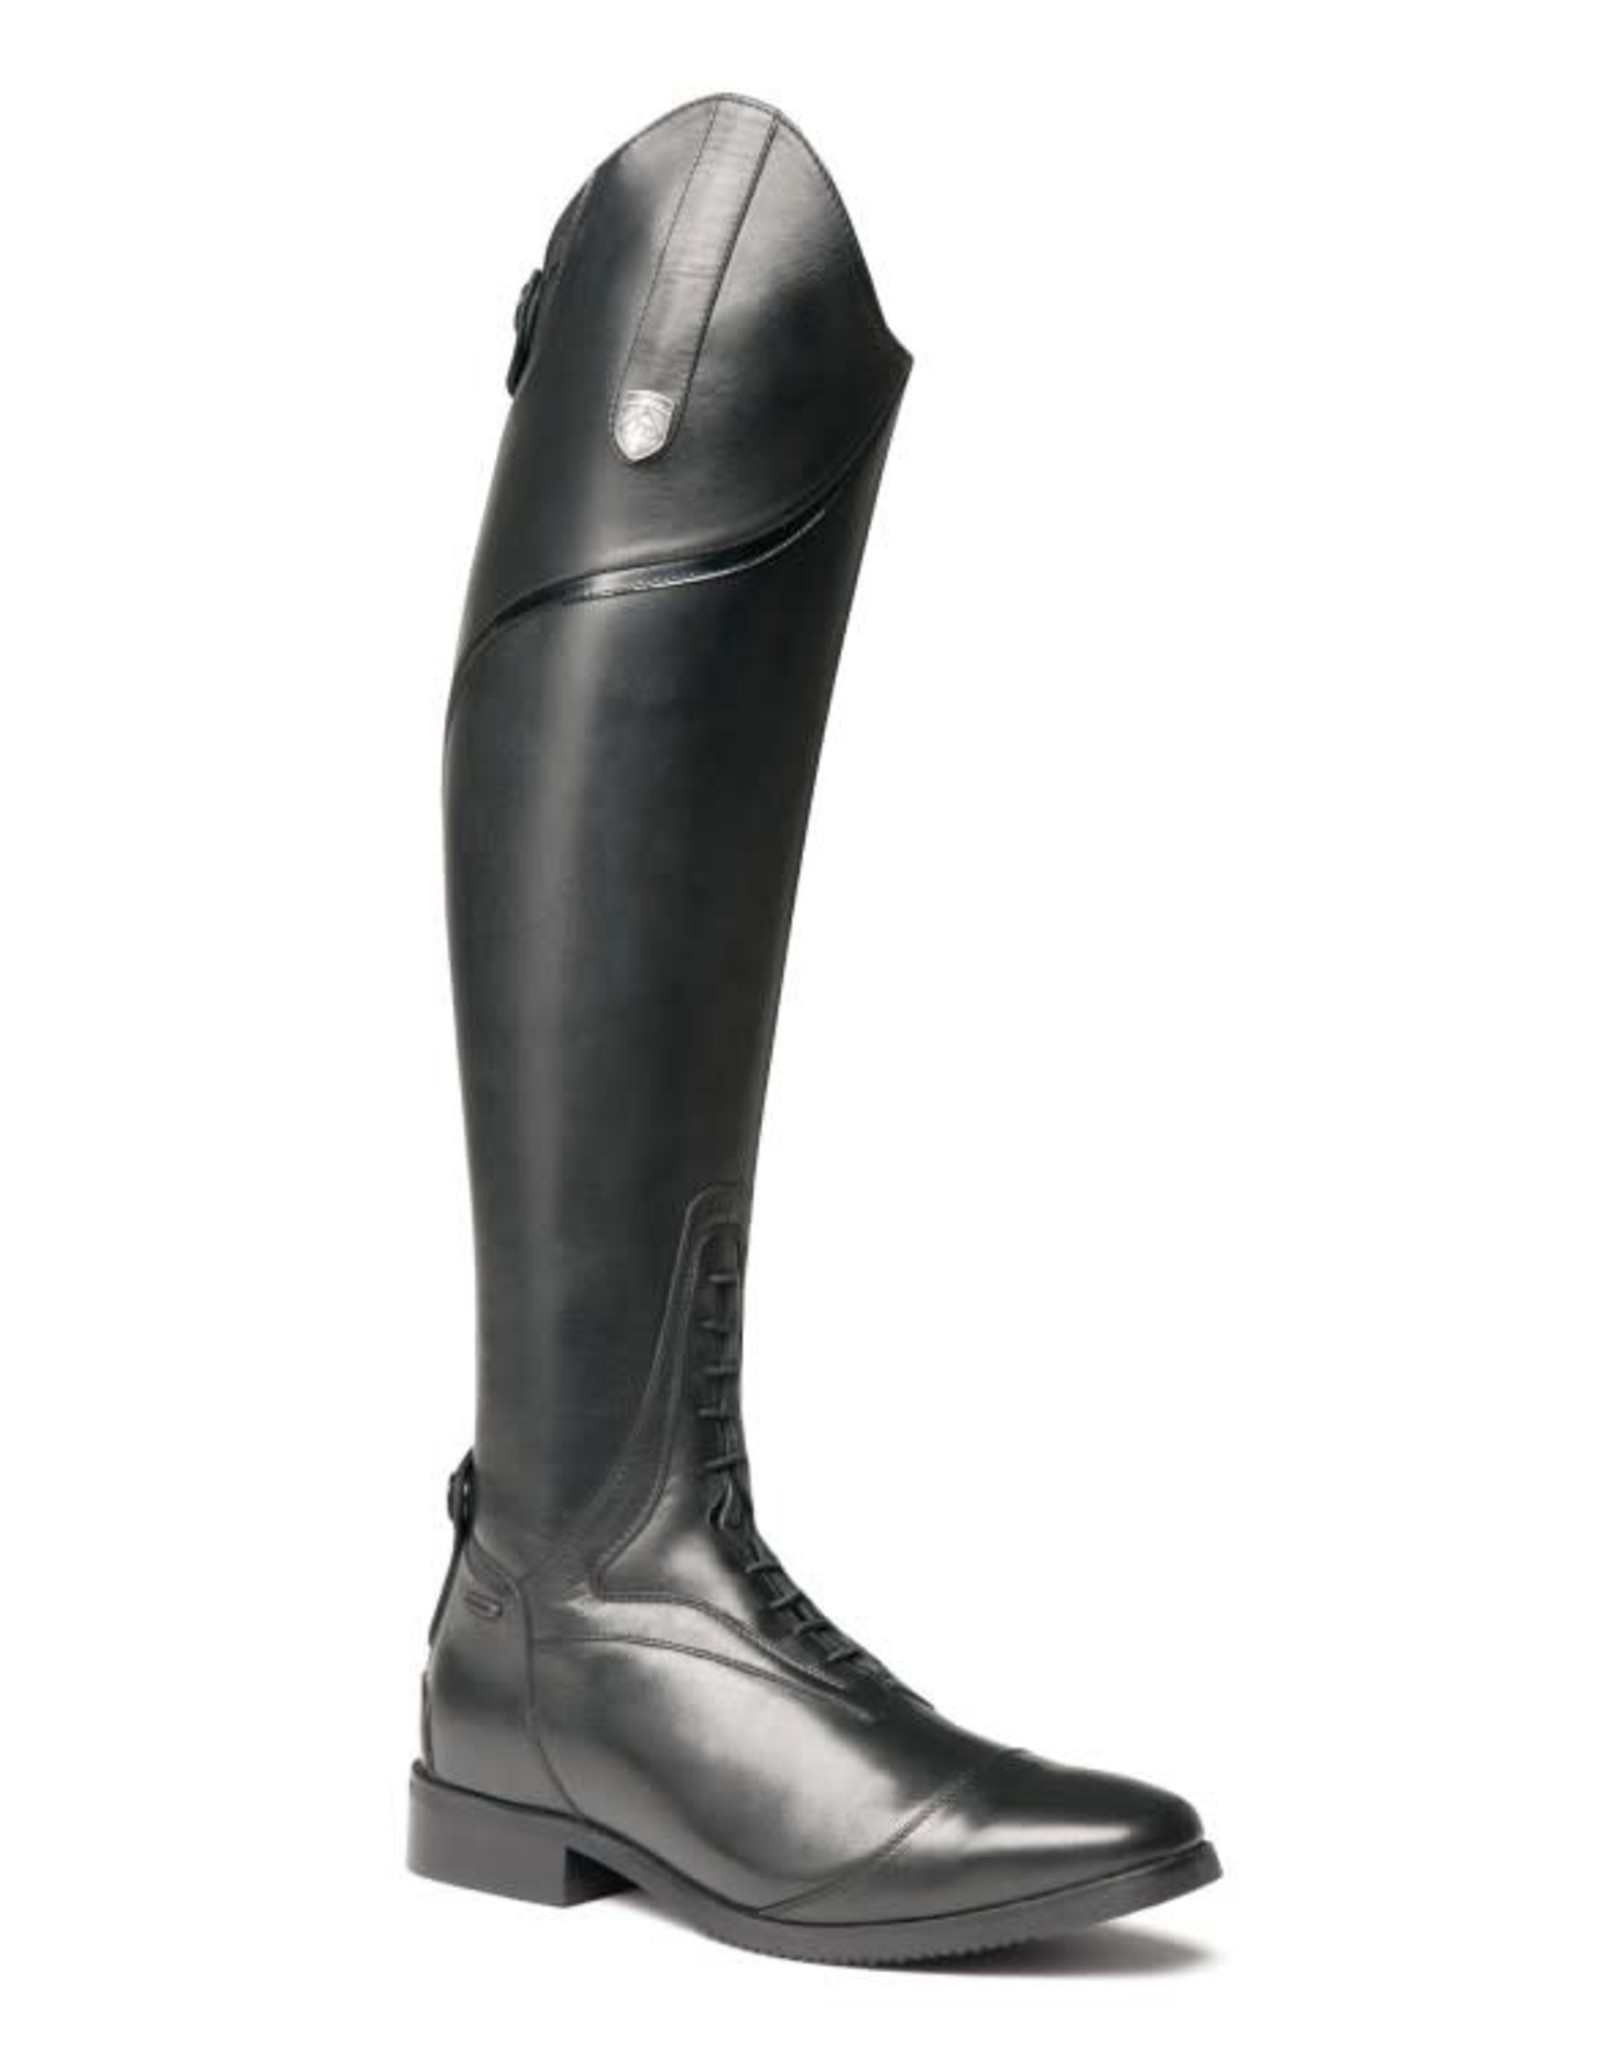 MOUNTAIN HORSE SOVEREIGN FIELD BOOTS - BLACK